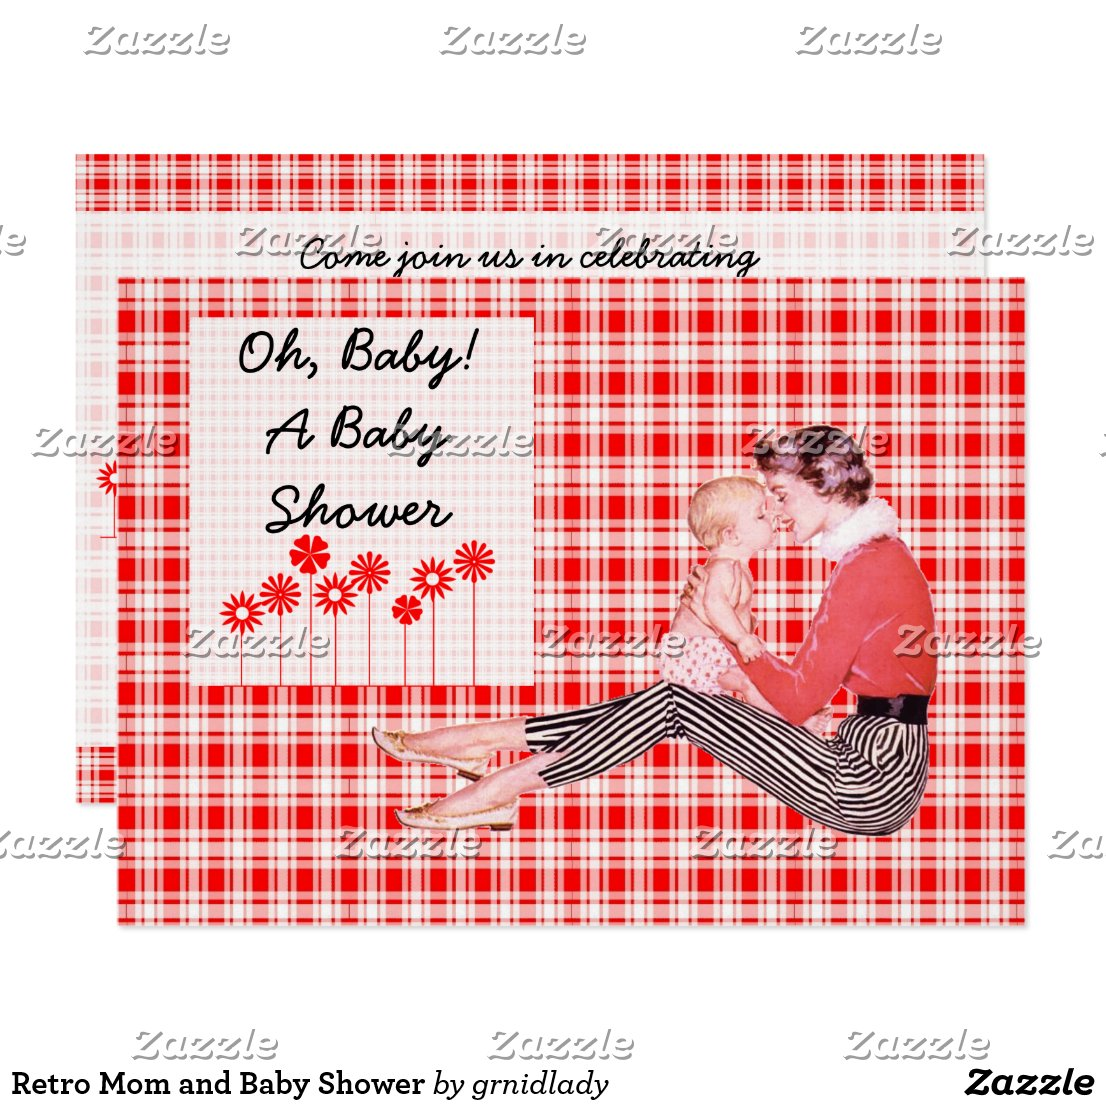 Retro Mom and Baby Shower Invitation